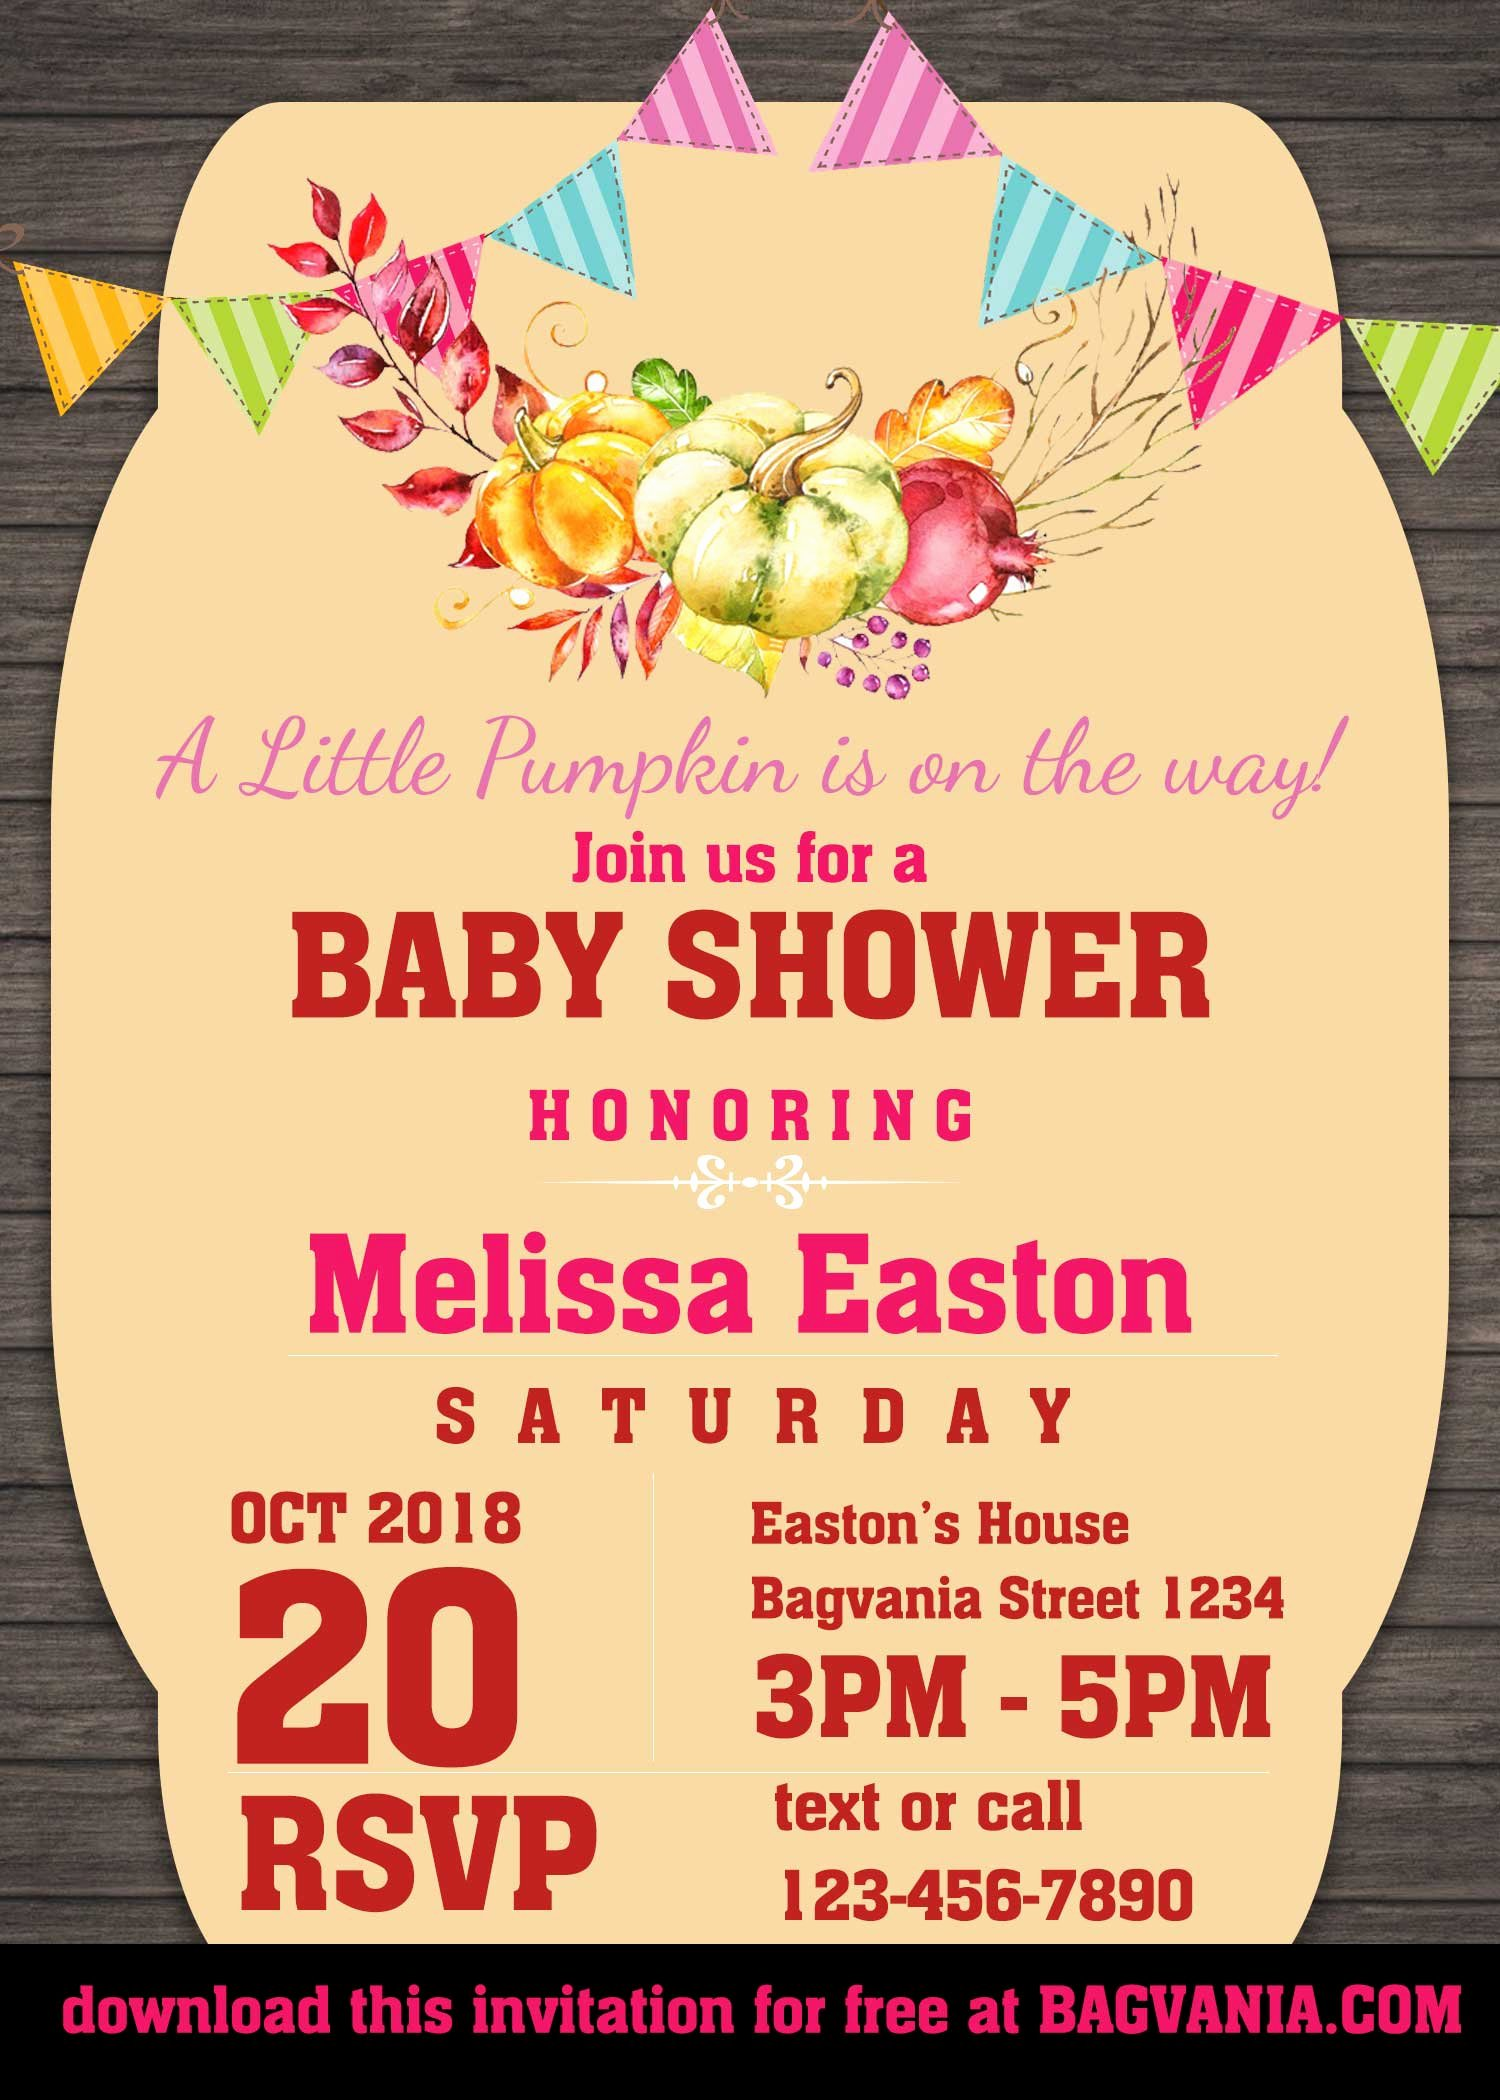 Downloadable Baby Shower Invitation Templates Inspirational Free Pumpkin Baby Shower Invitation Templates – Free